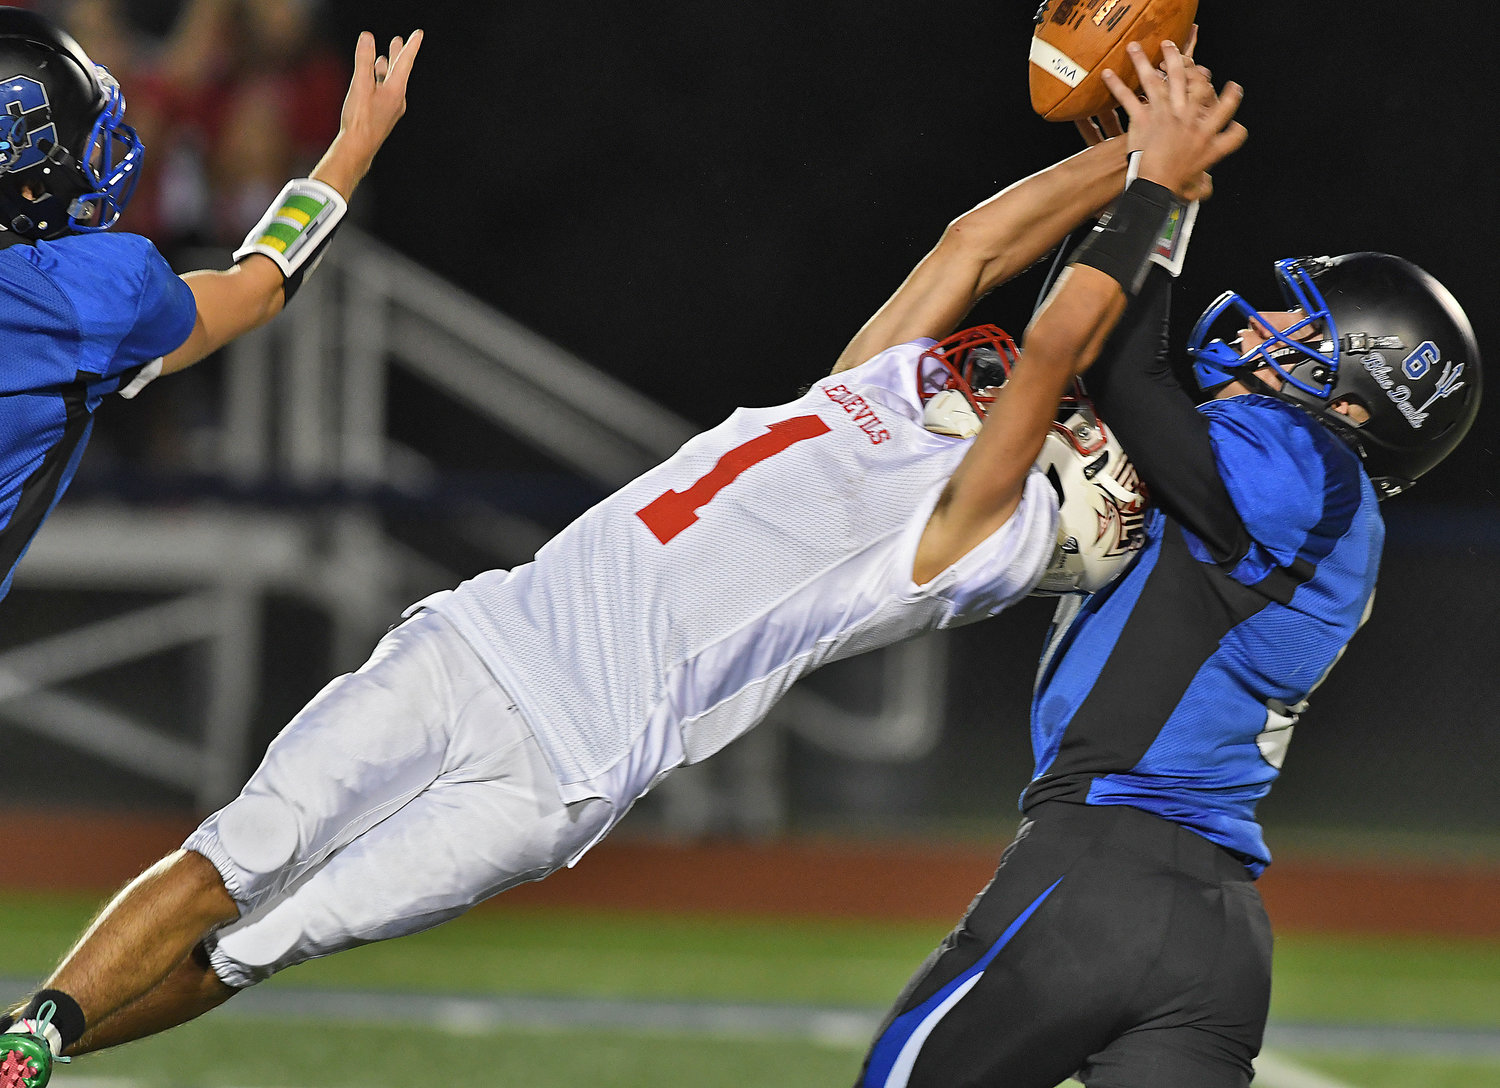 GOOD TRY — VVS running back James Wheeler IV reaches for the ball but can't make the catch as he is defended by Camden's Eric Mitchell, right, during Friday night's Class B East game in Camden. The visiting Red Devils won, 34-14.